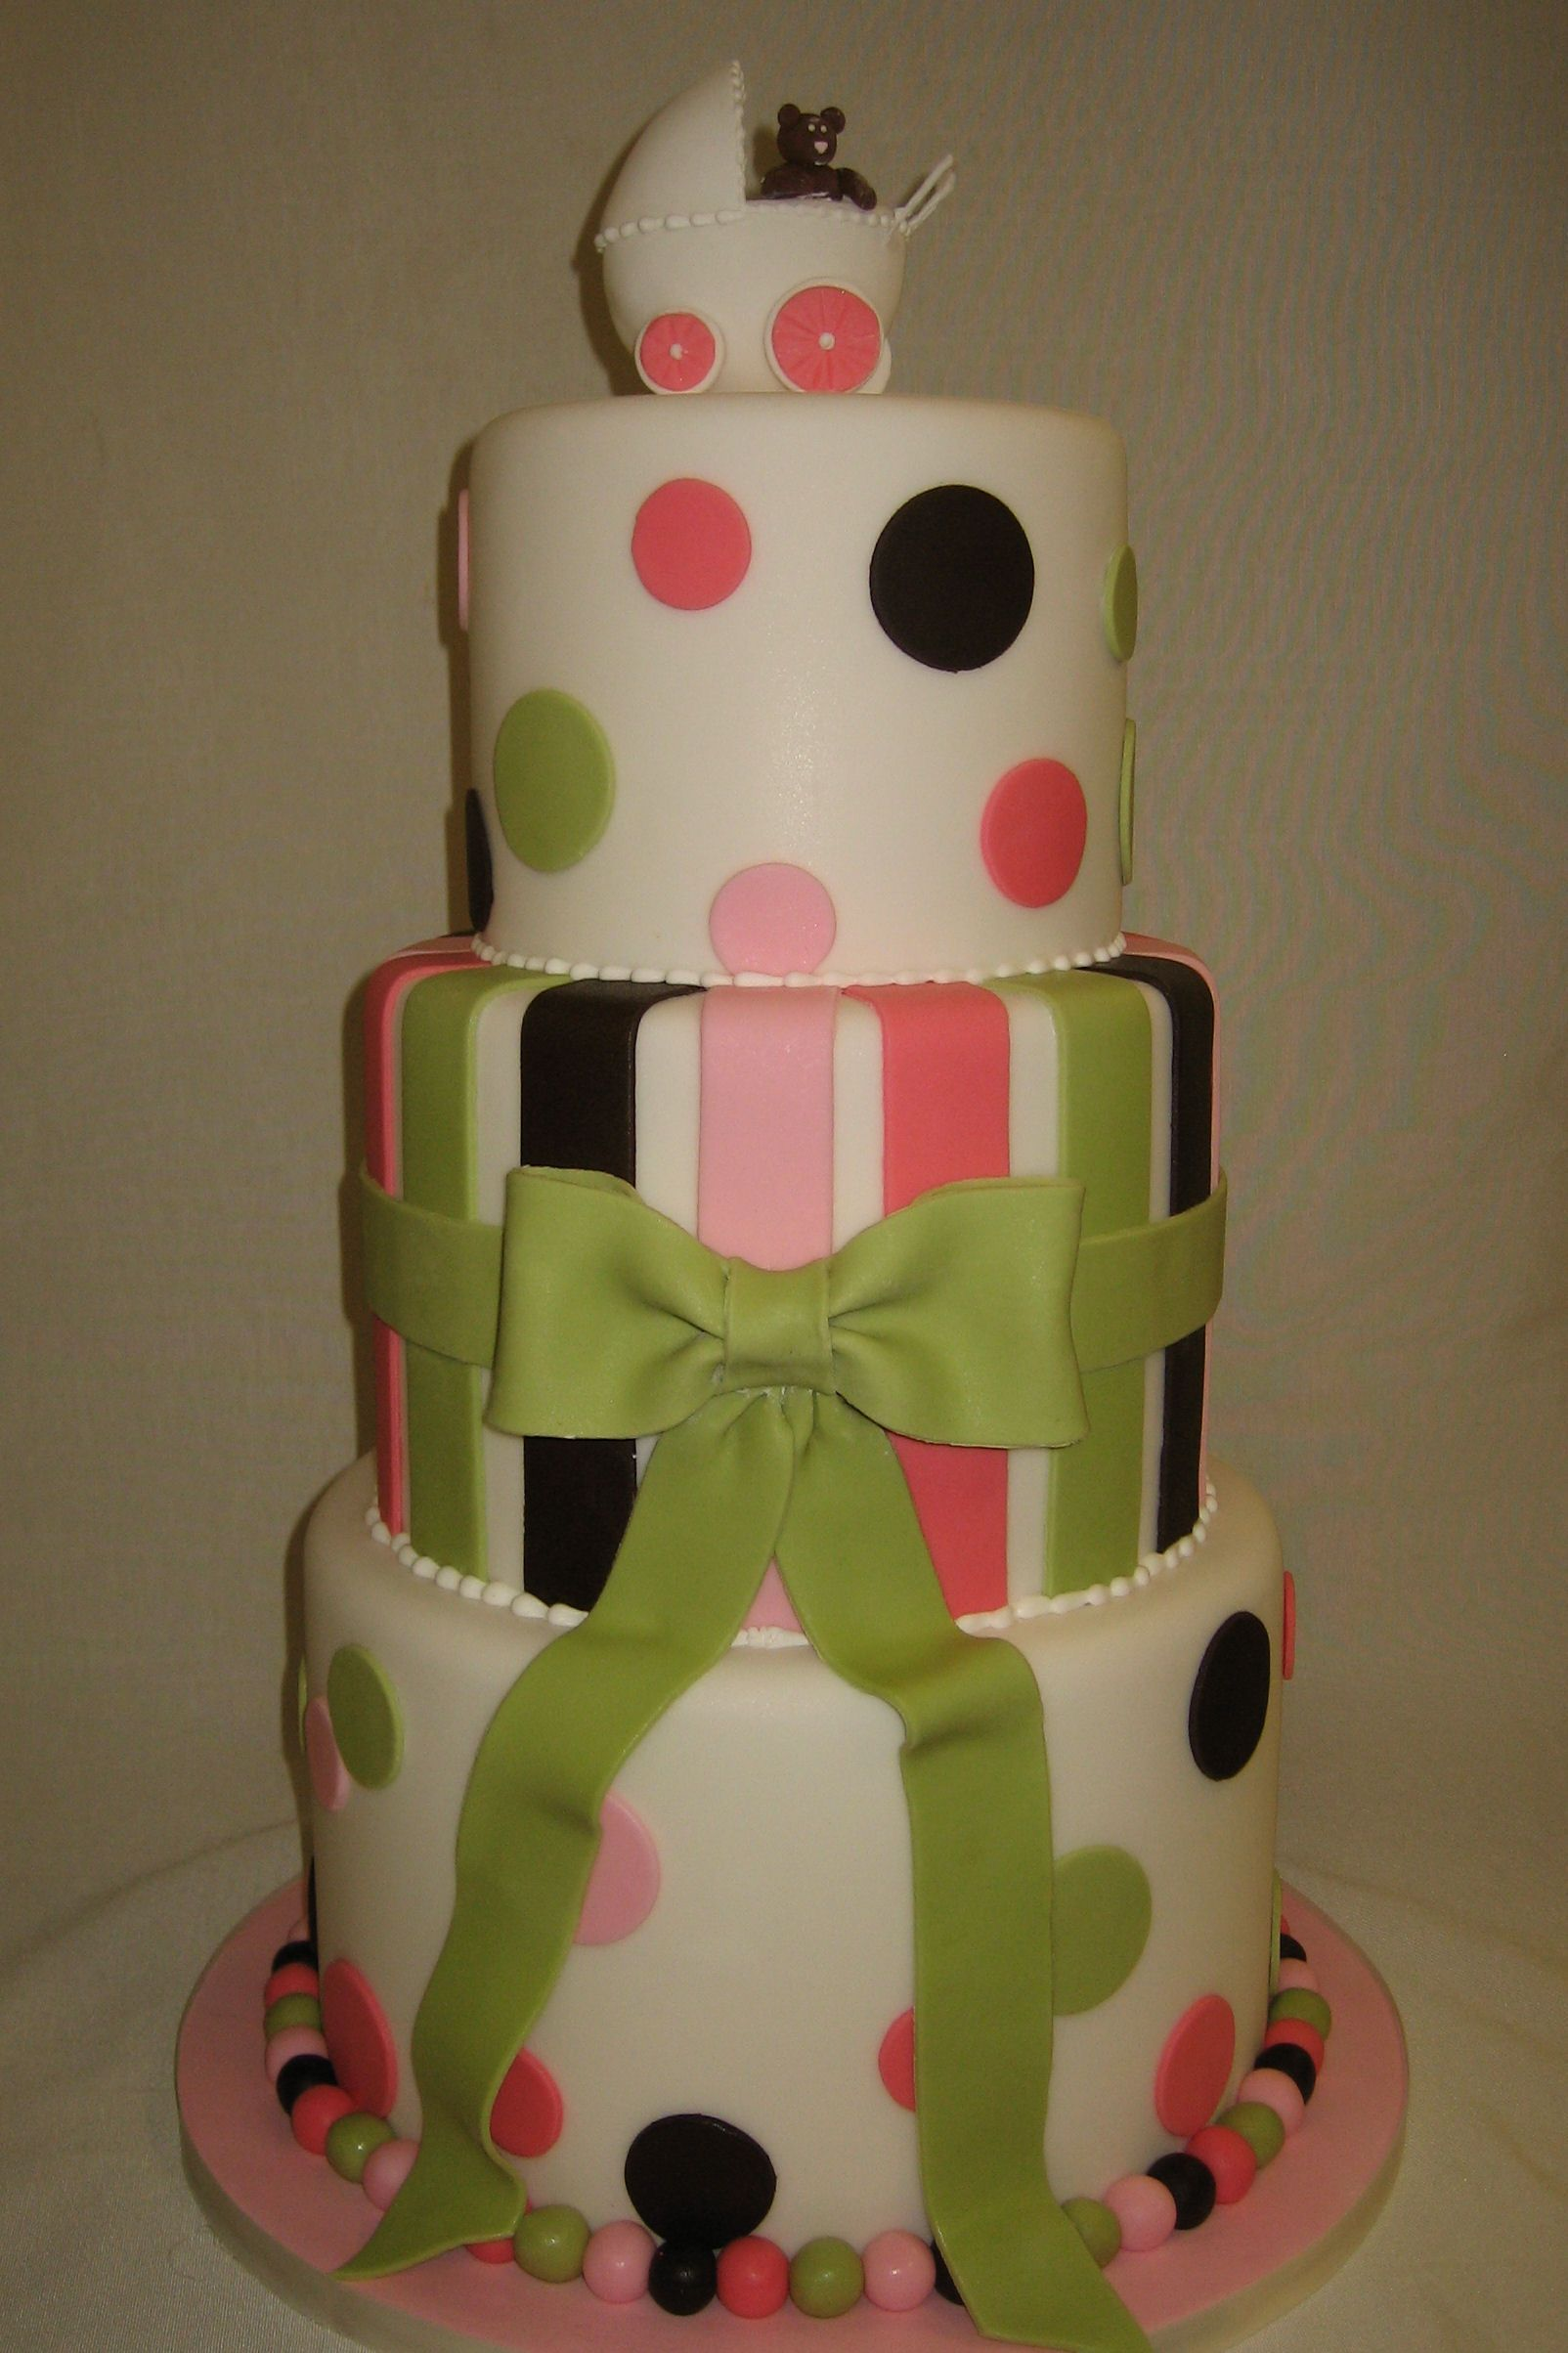 Amy Beck Cake Design  Chicago, Il  Pink And